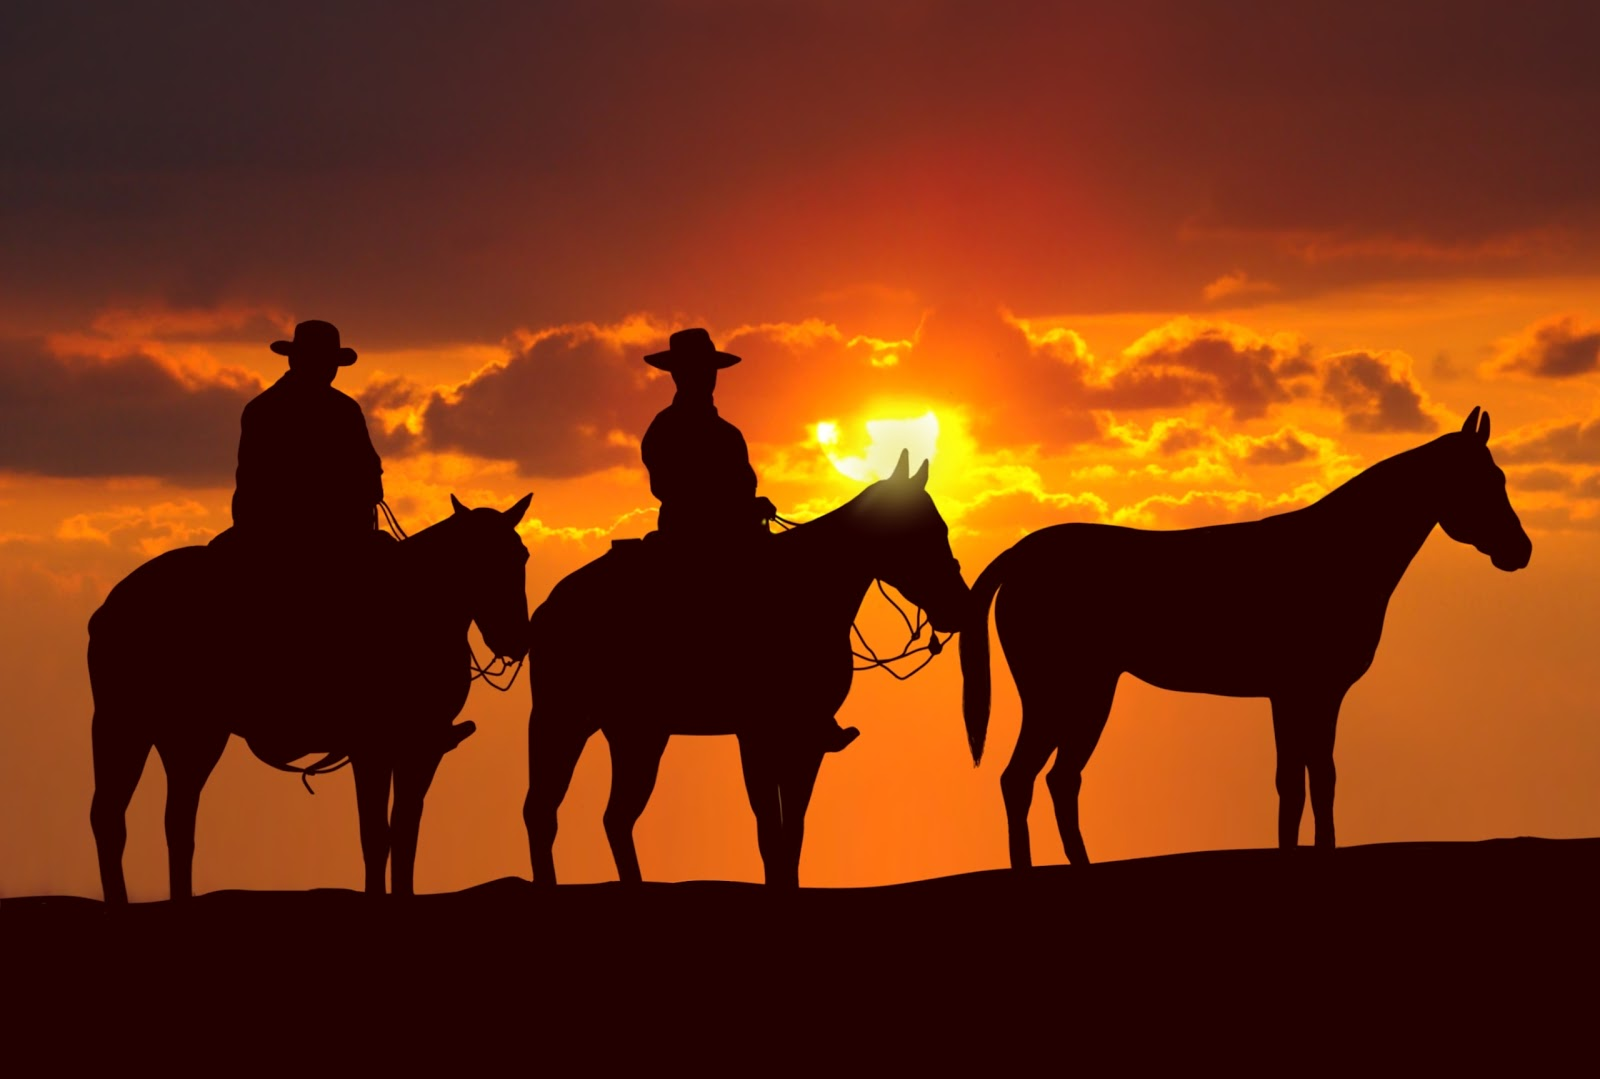 Cowboys on The Trail: The Singing Cowboy